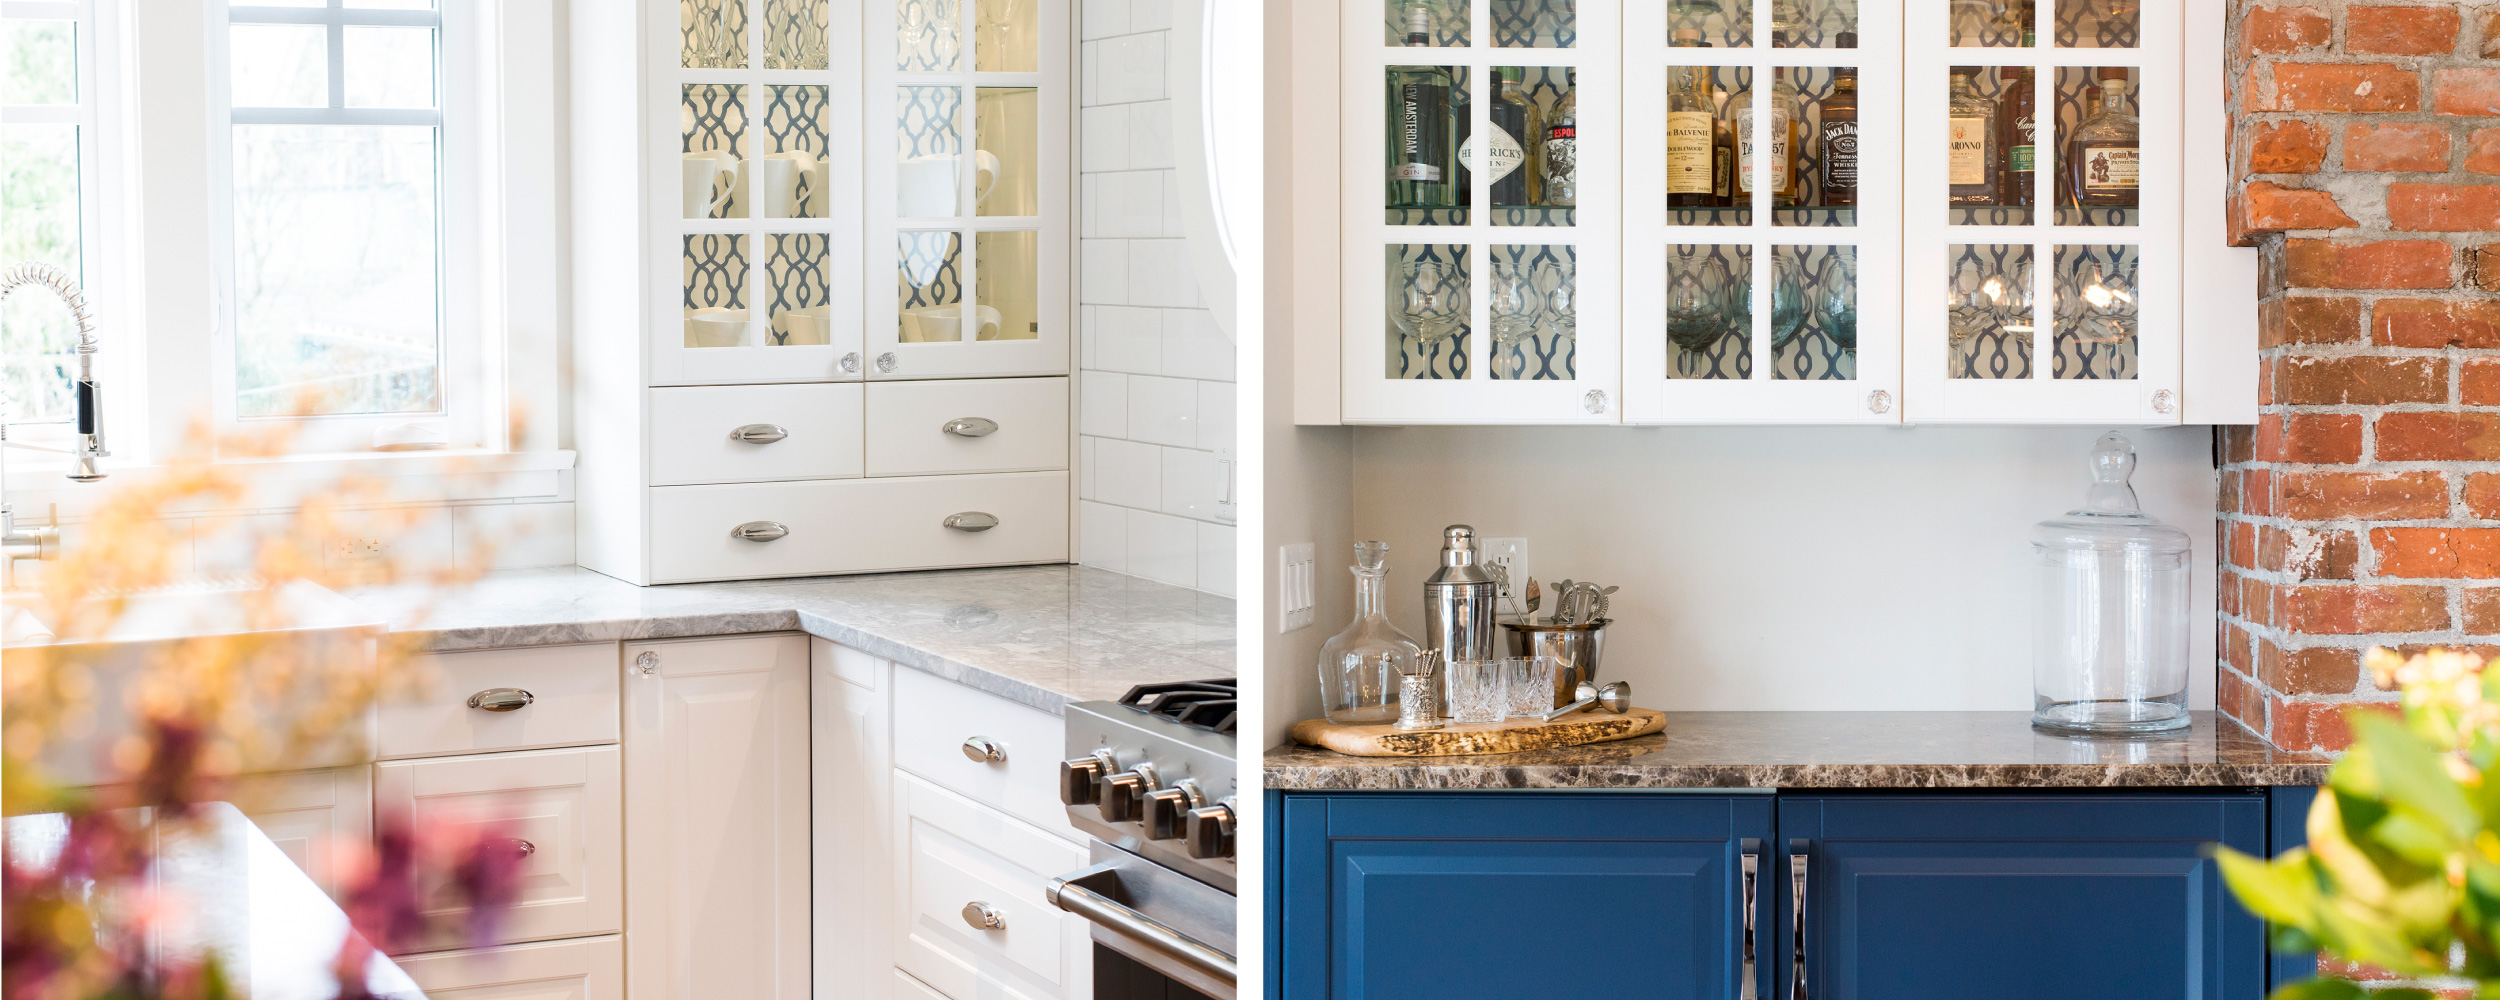 Transitional kitchen cabinet style | IKAN | Victoria, BC